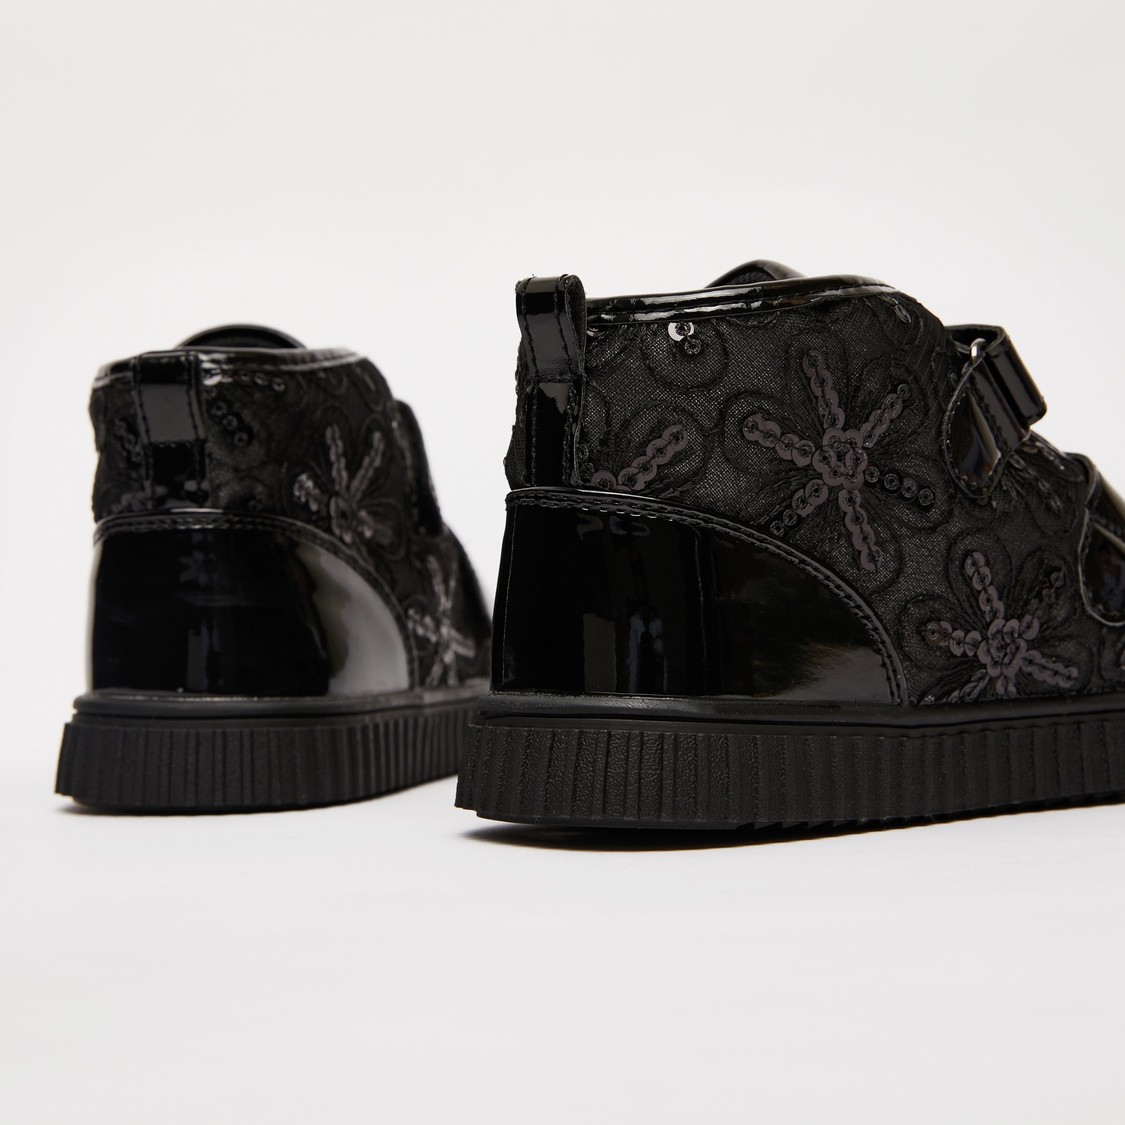 Embellished Floral Panel Boots with Hook and Loop Closure